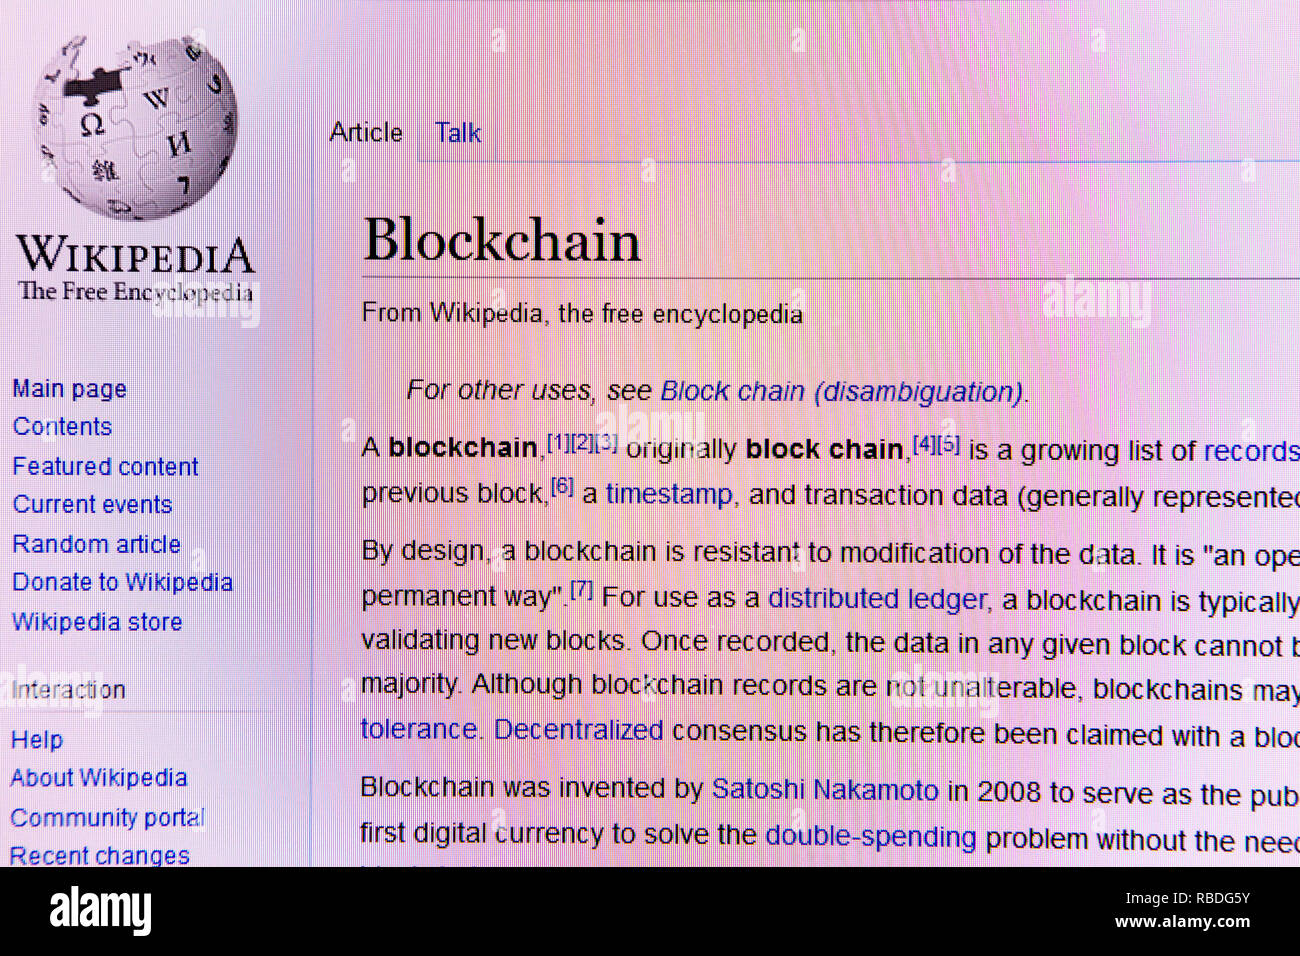 Wikipedia website article for BlockChain distributed ledger technology - Stock Image